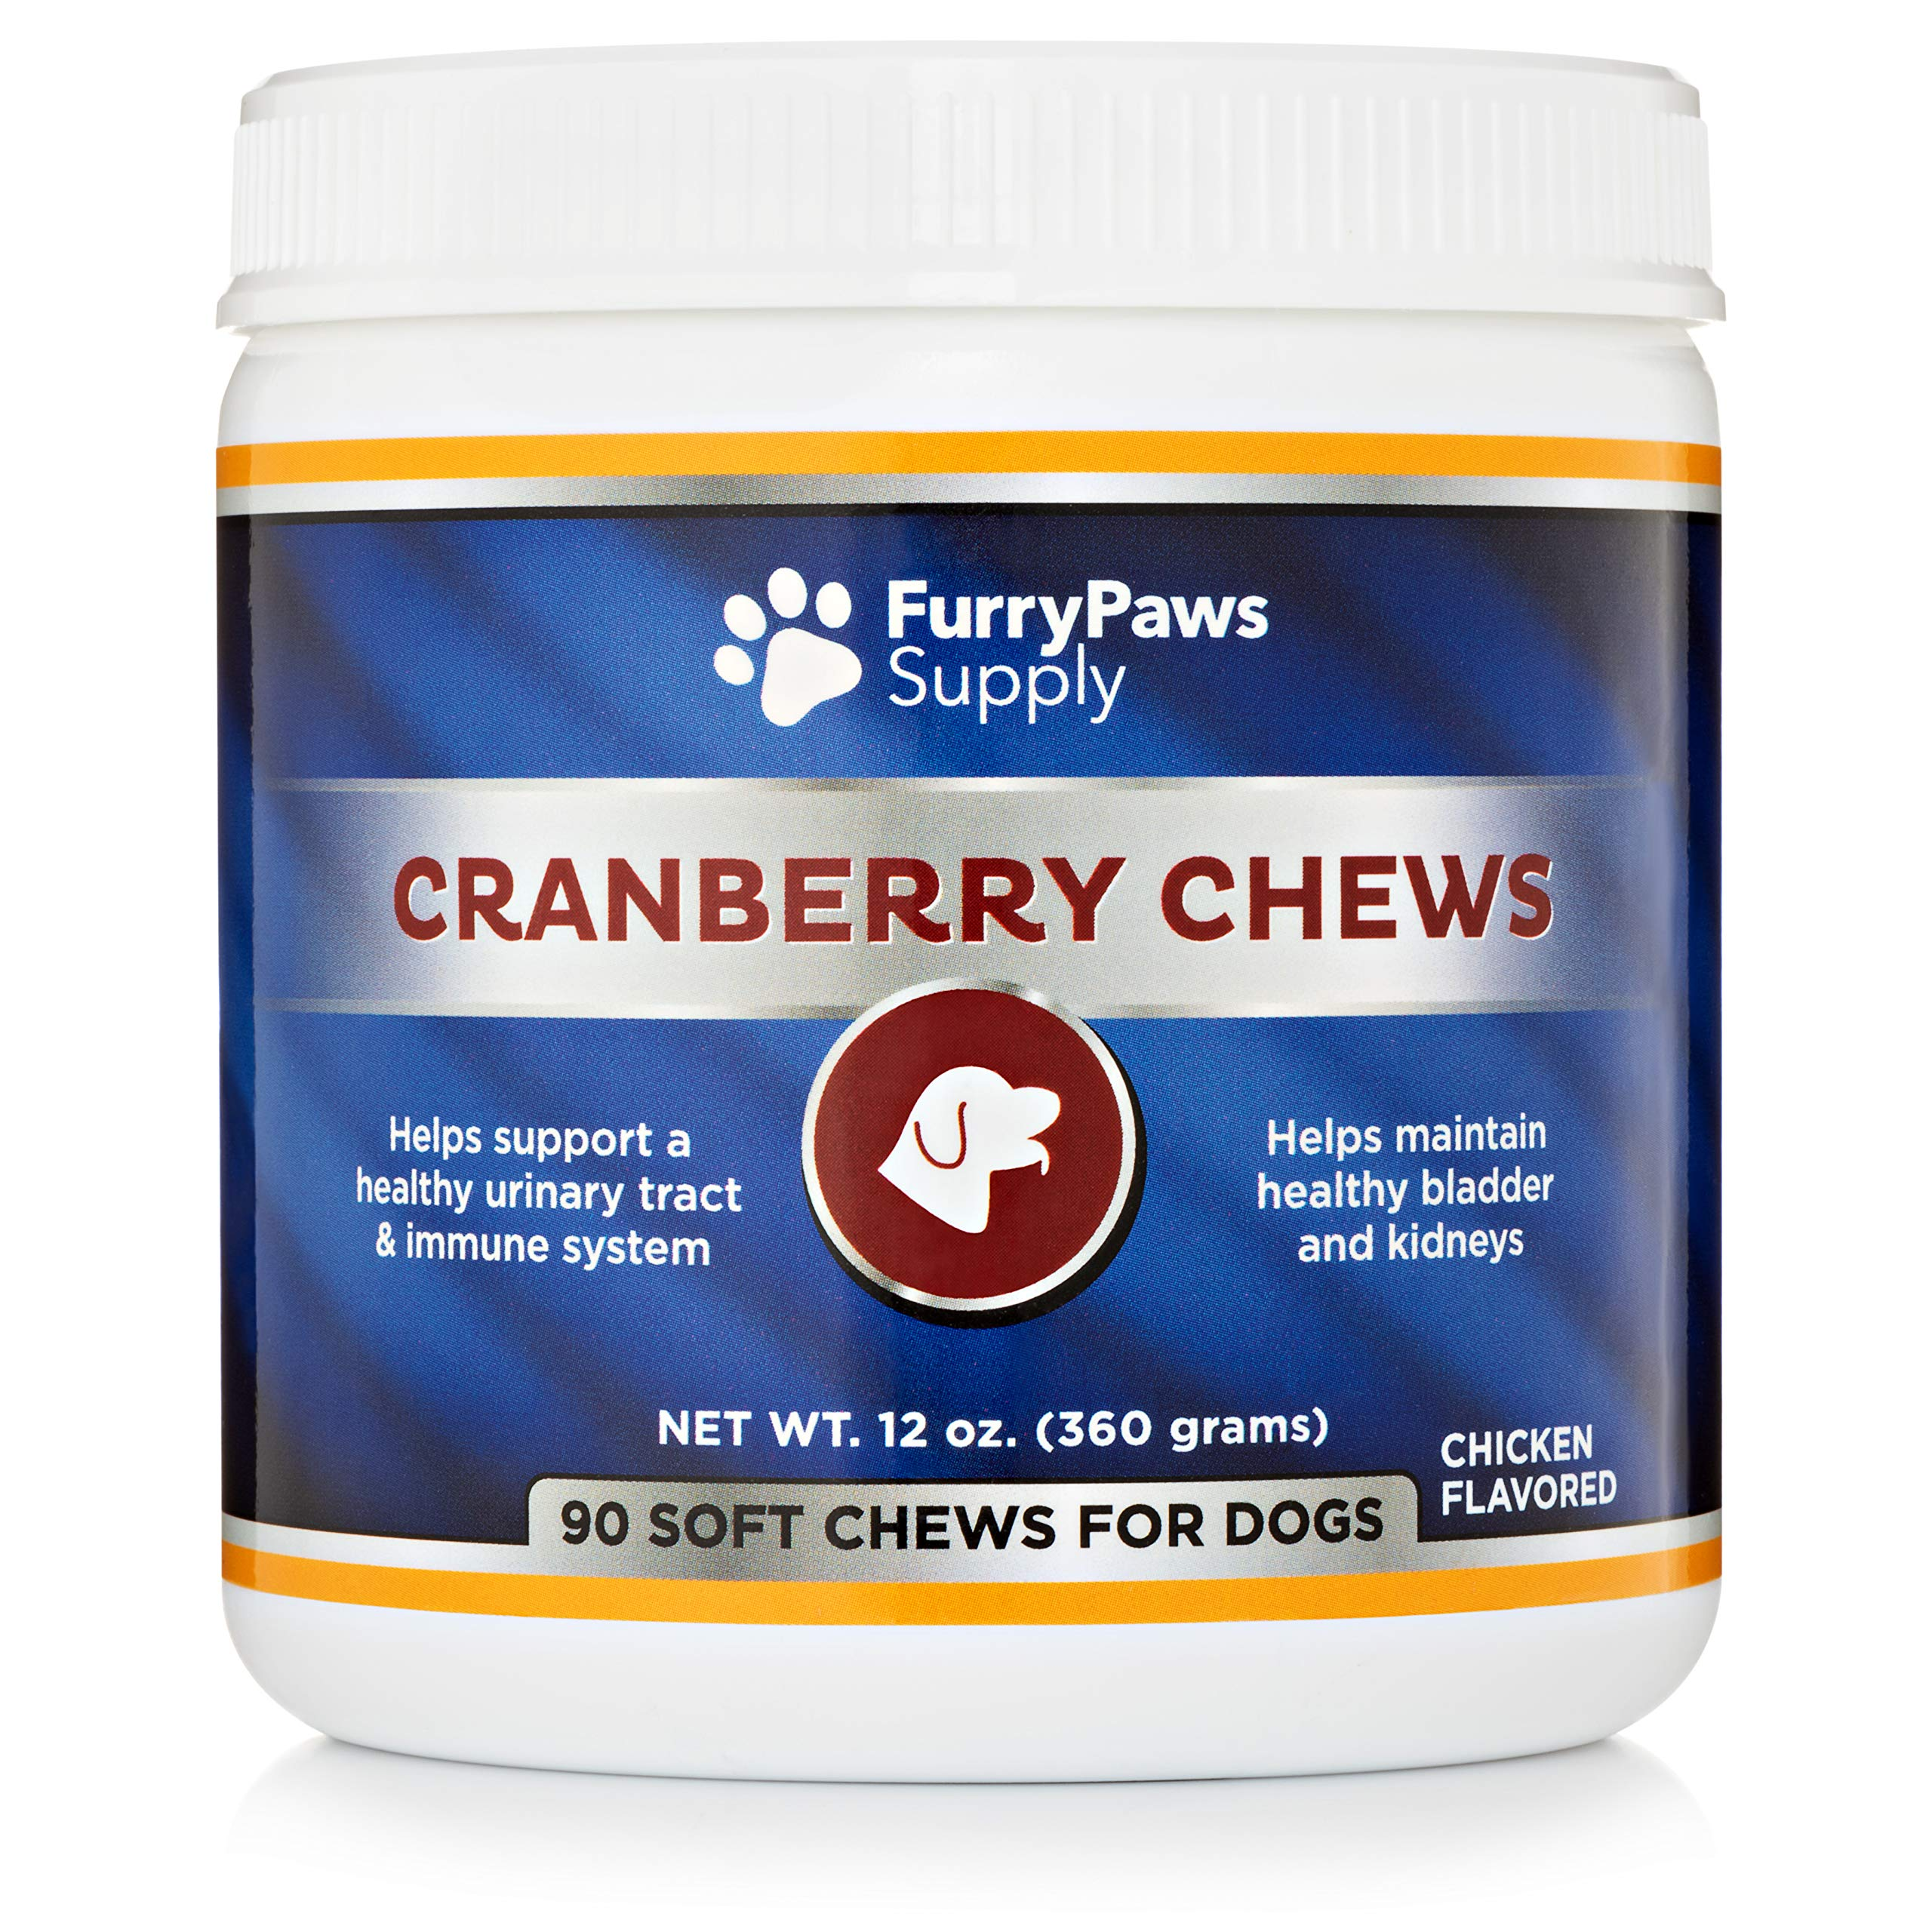 Furry Paws Cranberry Pills for Dogs - Dog UTI Treatment and Bladder Support by Furry Paws Supply